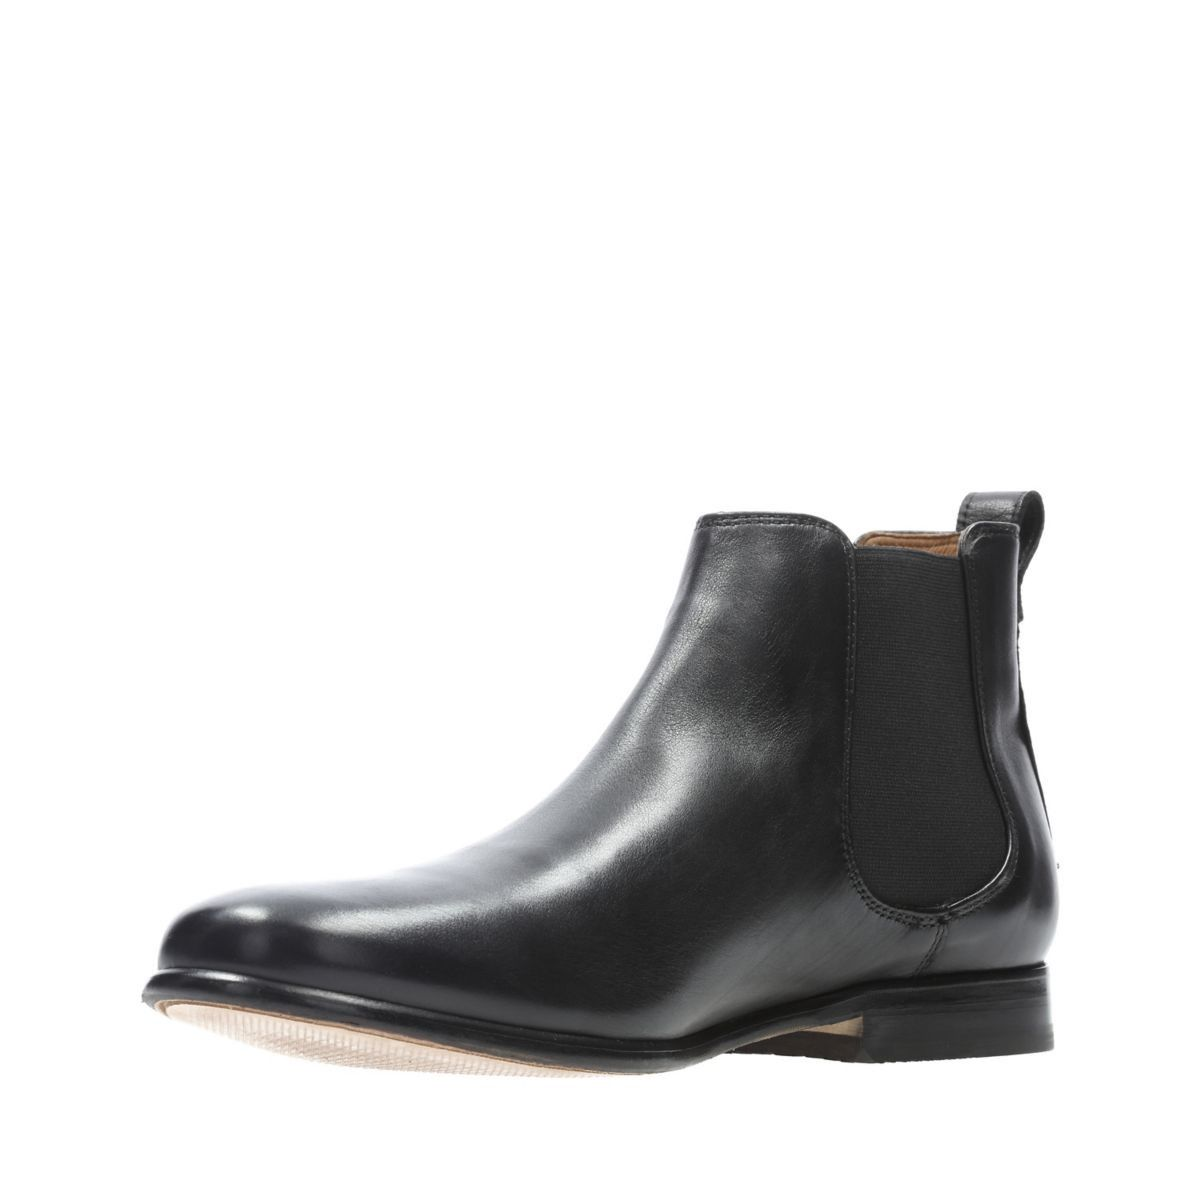 clarks form chelsea mens boots black leather 10 5 products  clarks form chelsea mens boots black leather 10 5